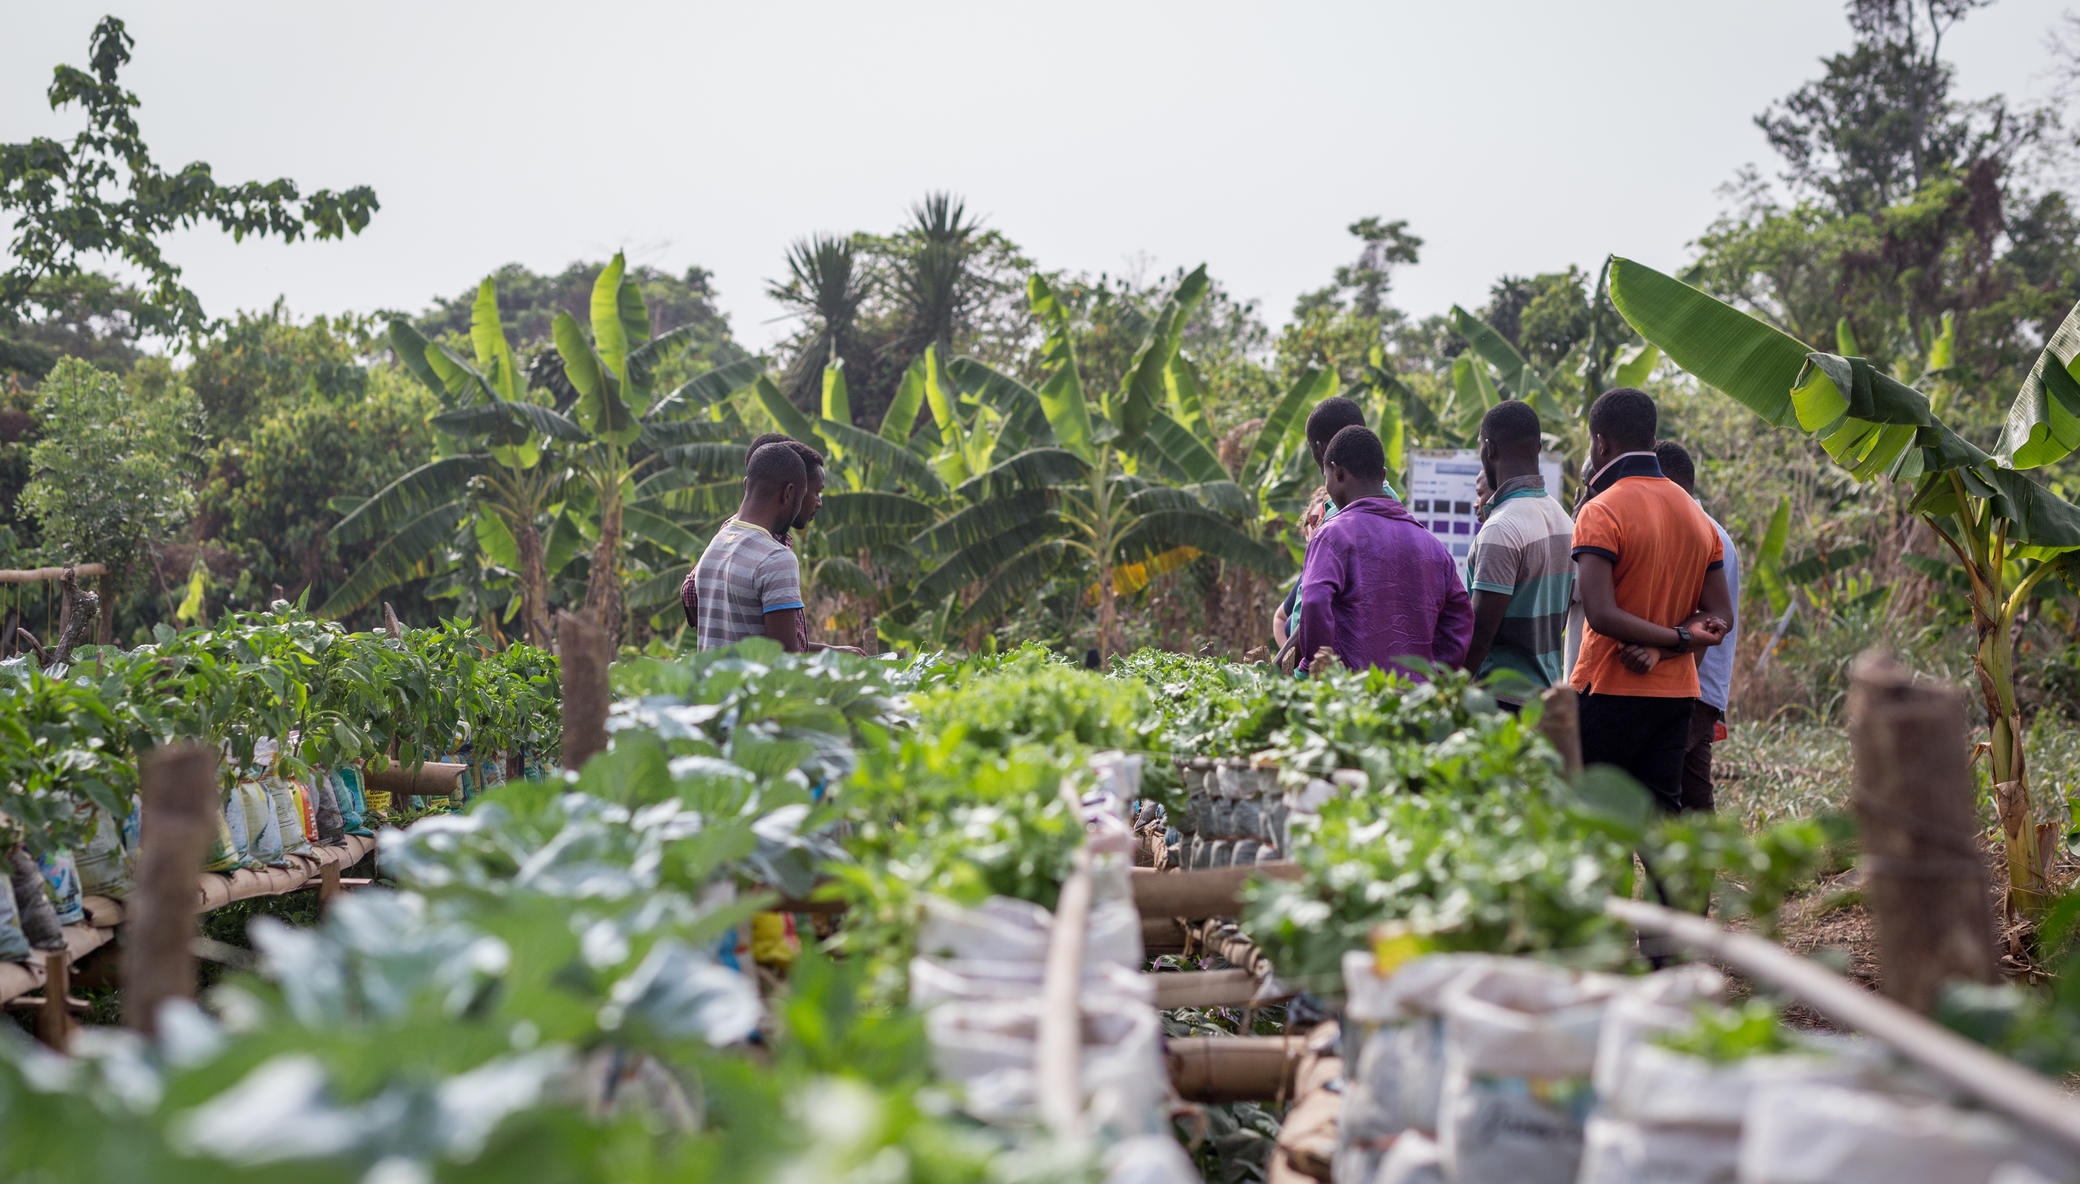 Take Best Practices to Farmers in Rural Ghana